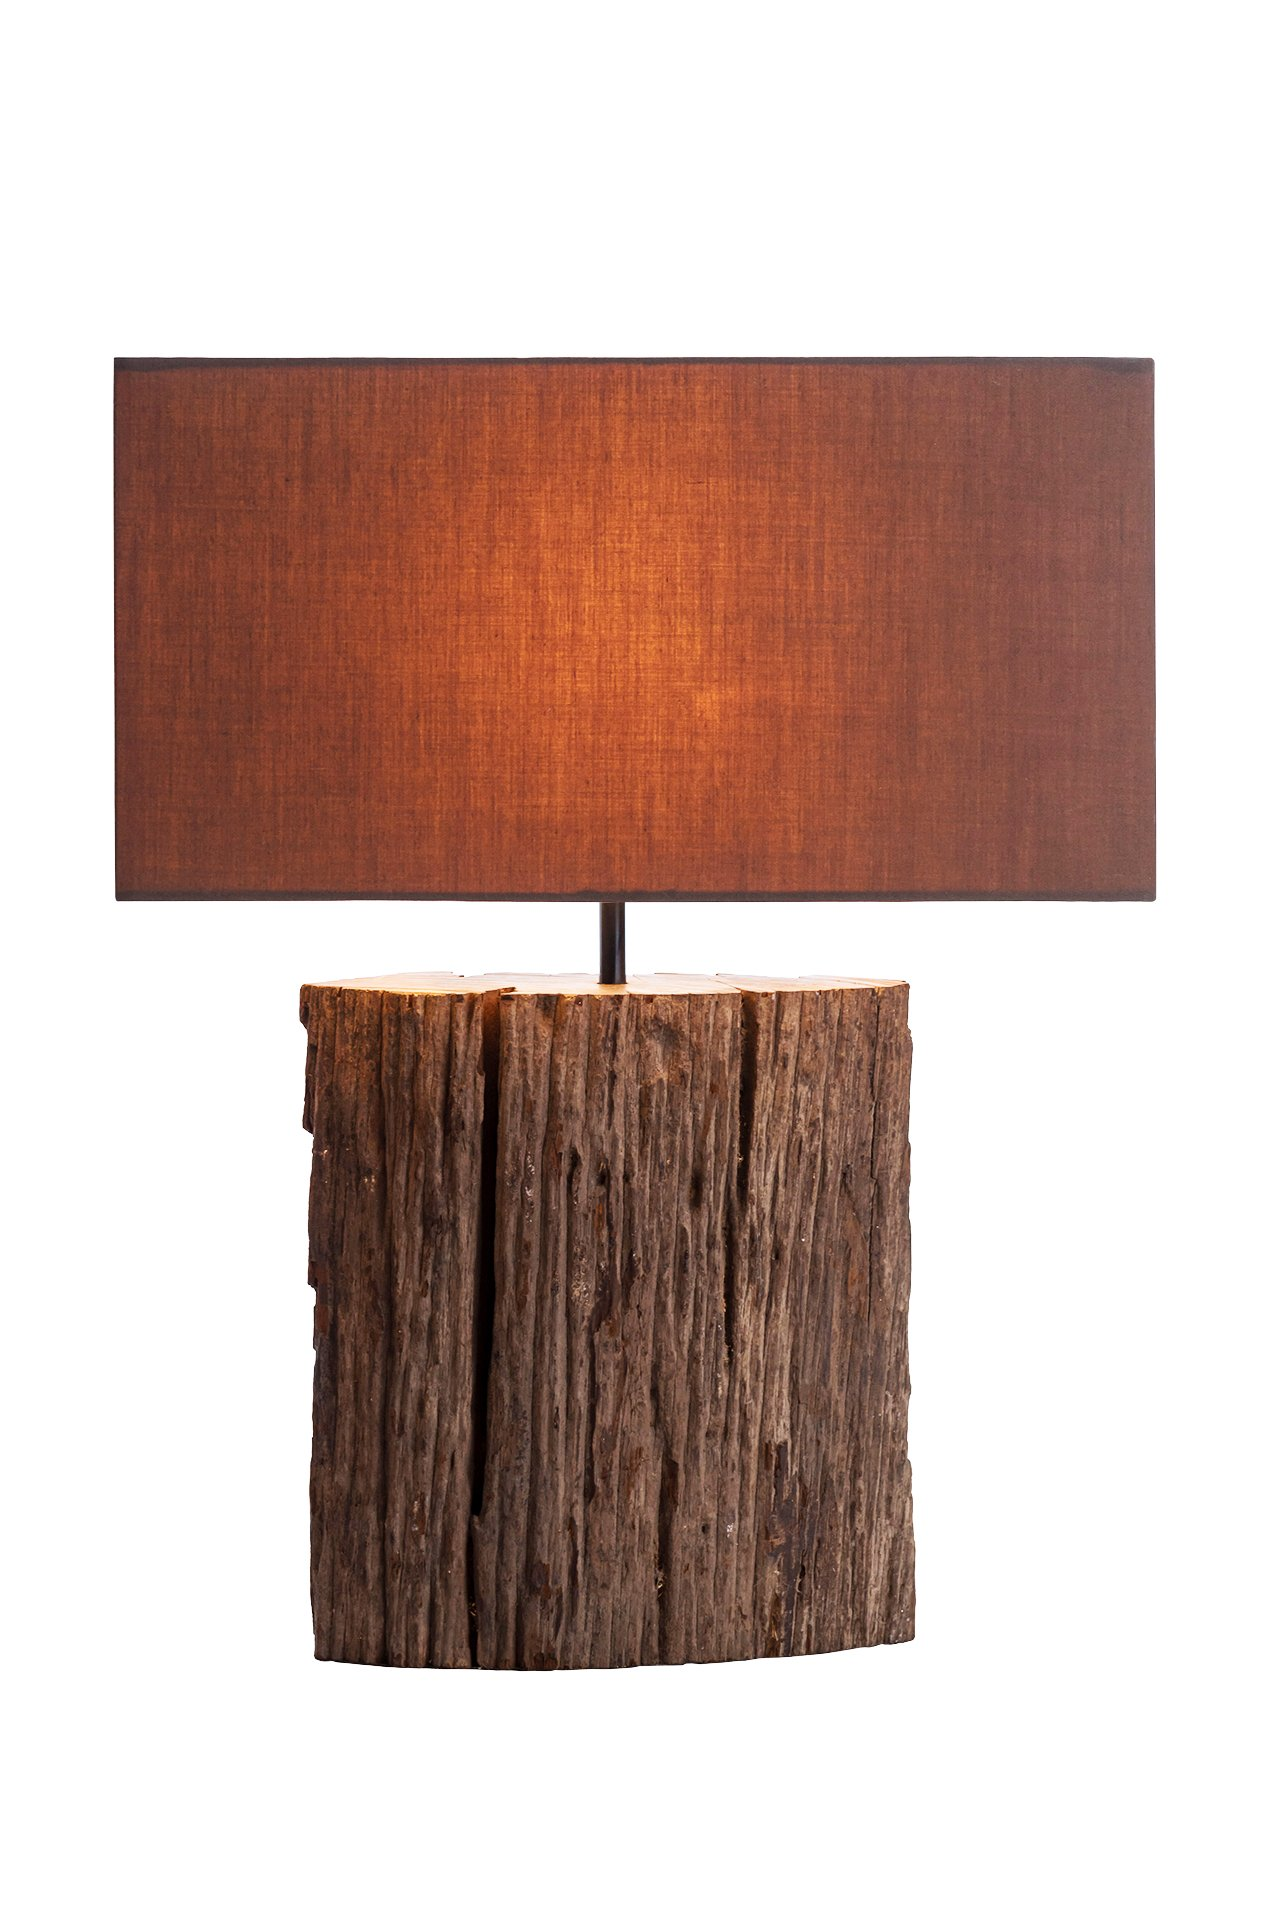 NPD O'THENTIQUE Wax Driftwood Bark Table Lamp | Rustic Salvaged Natural Wood | Brown Shade Perfect as Entry Table Lamp, Sofa Table Lamp for Beach House, Cottage, Cabin, Bedroom, Living Room Decor